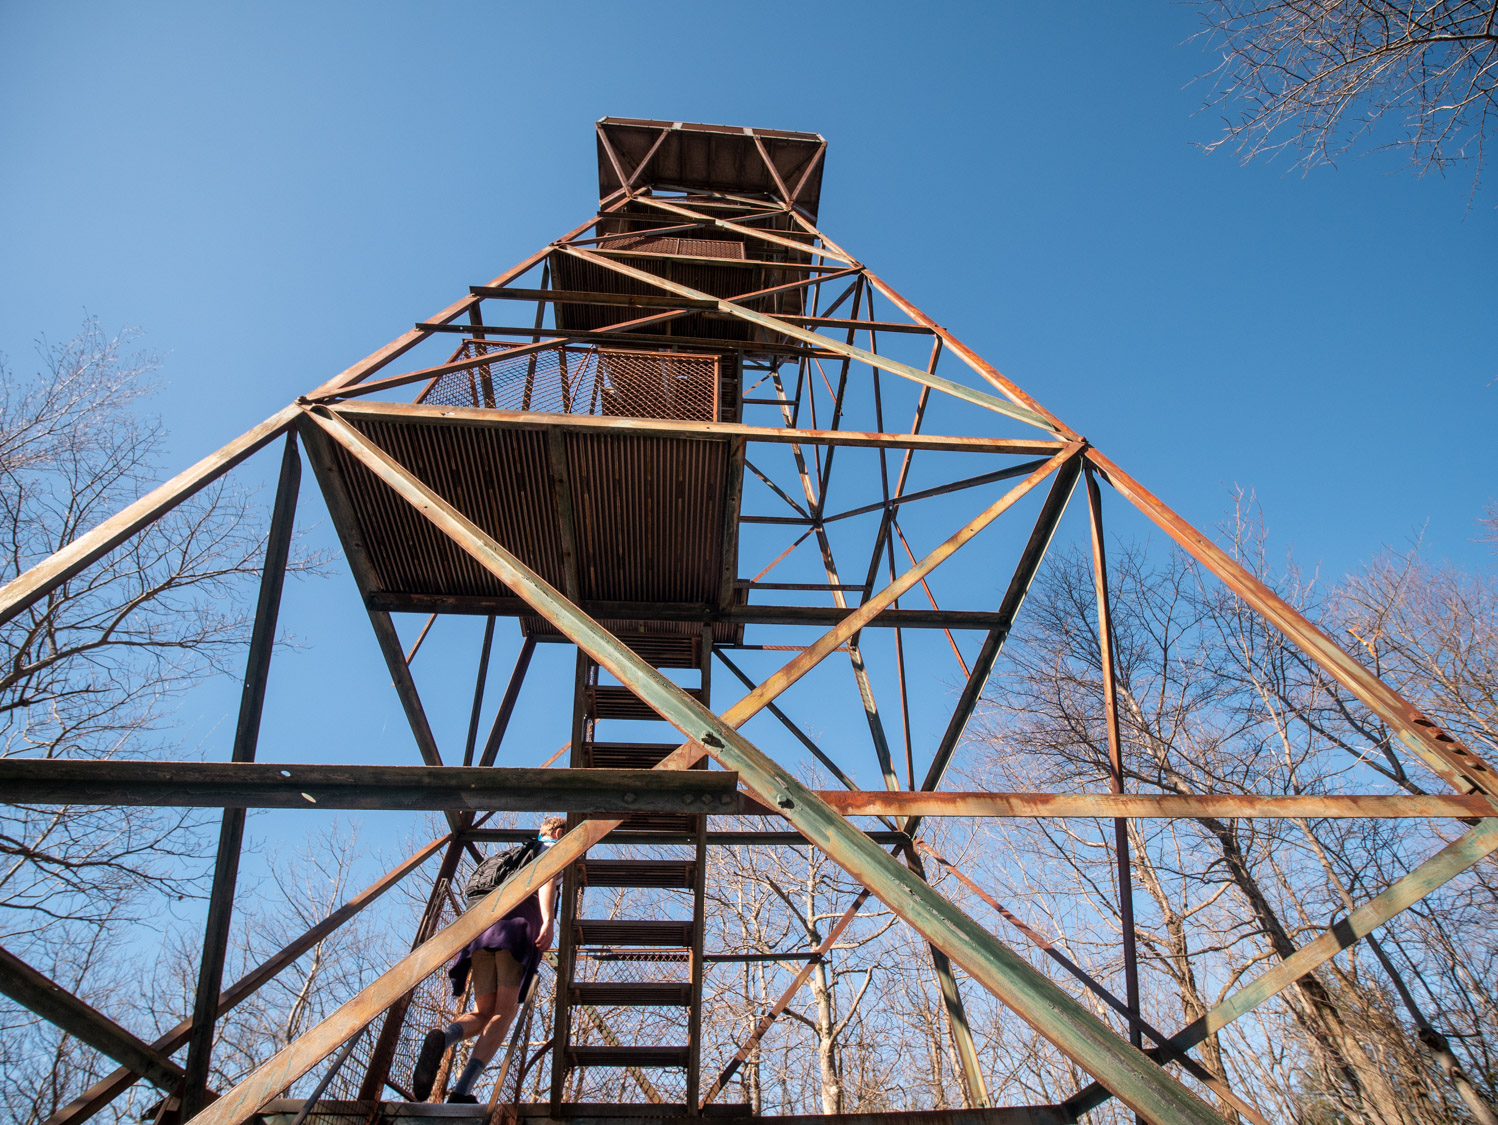 A closer view of the rusting edifice that is the observation tower.